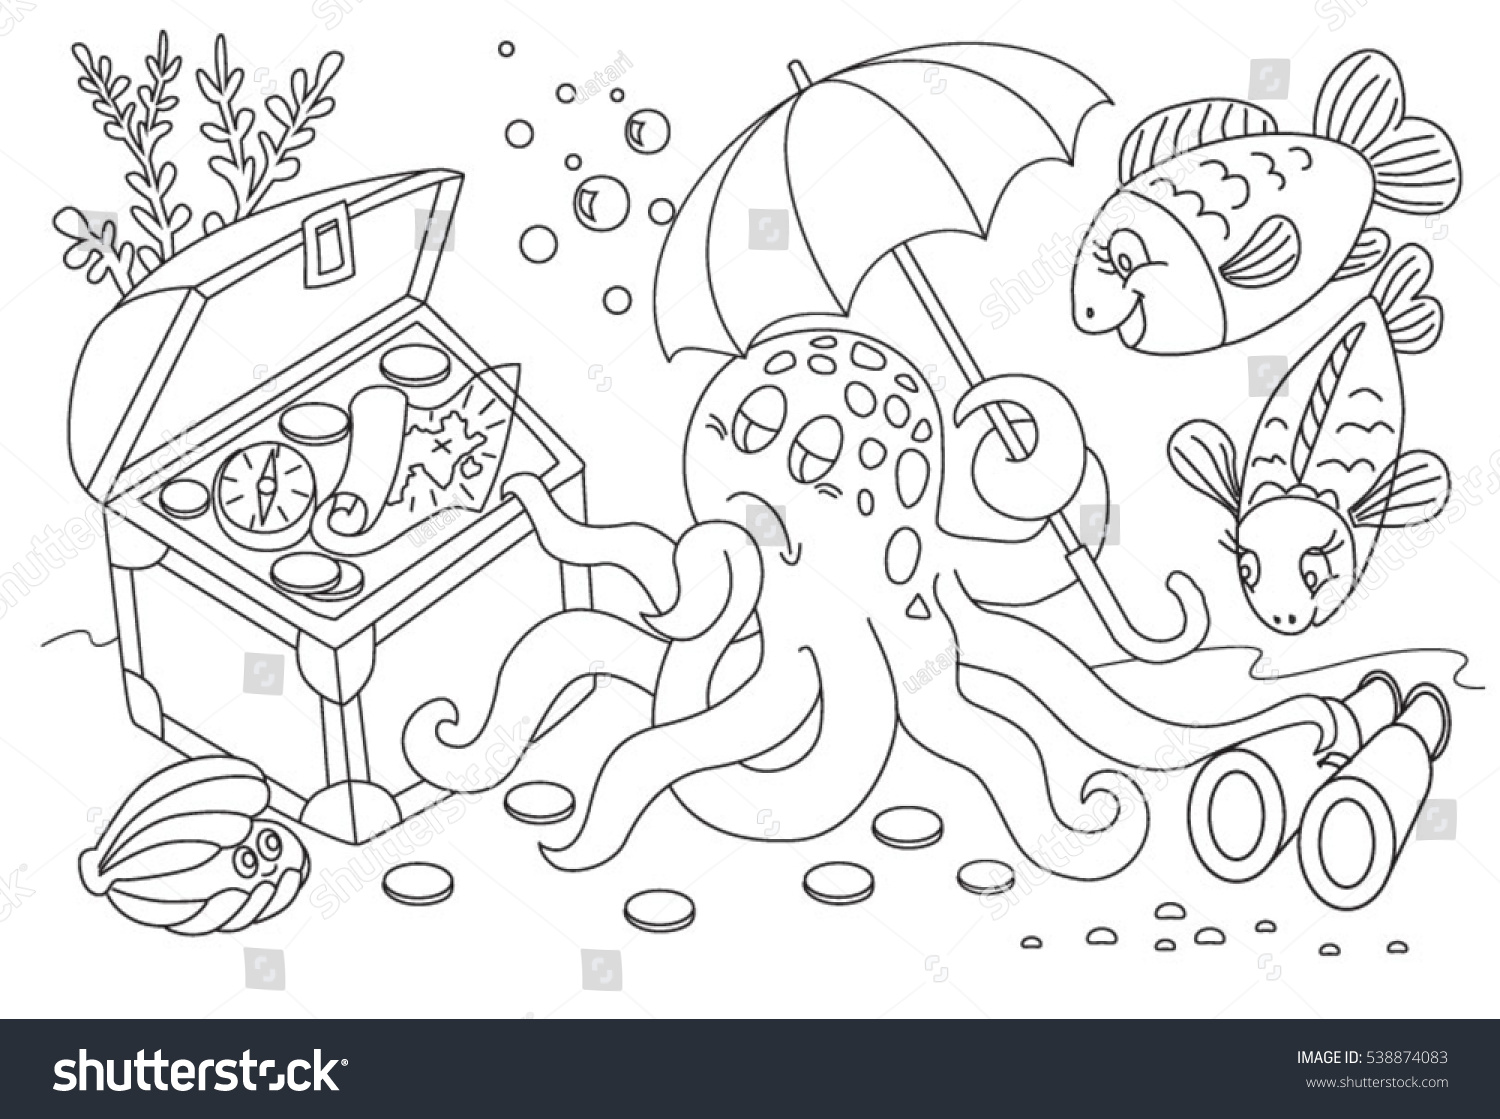 Book of life for coloring - Book Of Life Coloring Book Coloring Book Life In The Sea Octopus And Chest